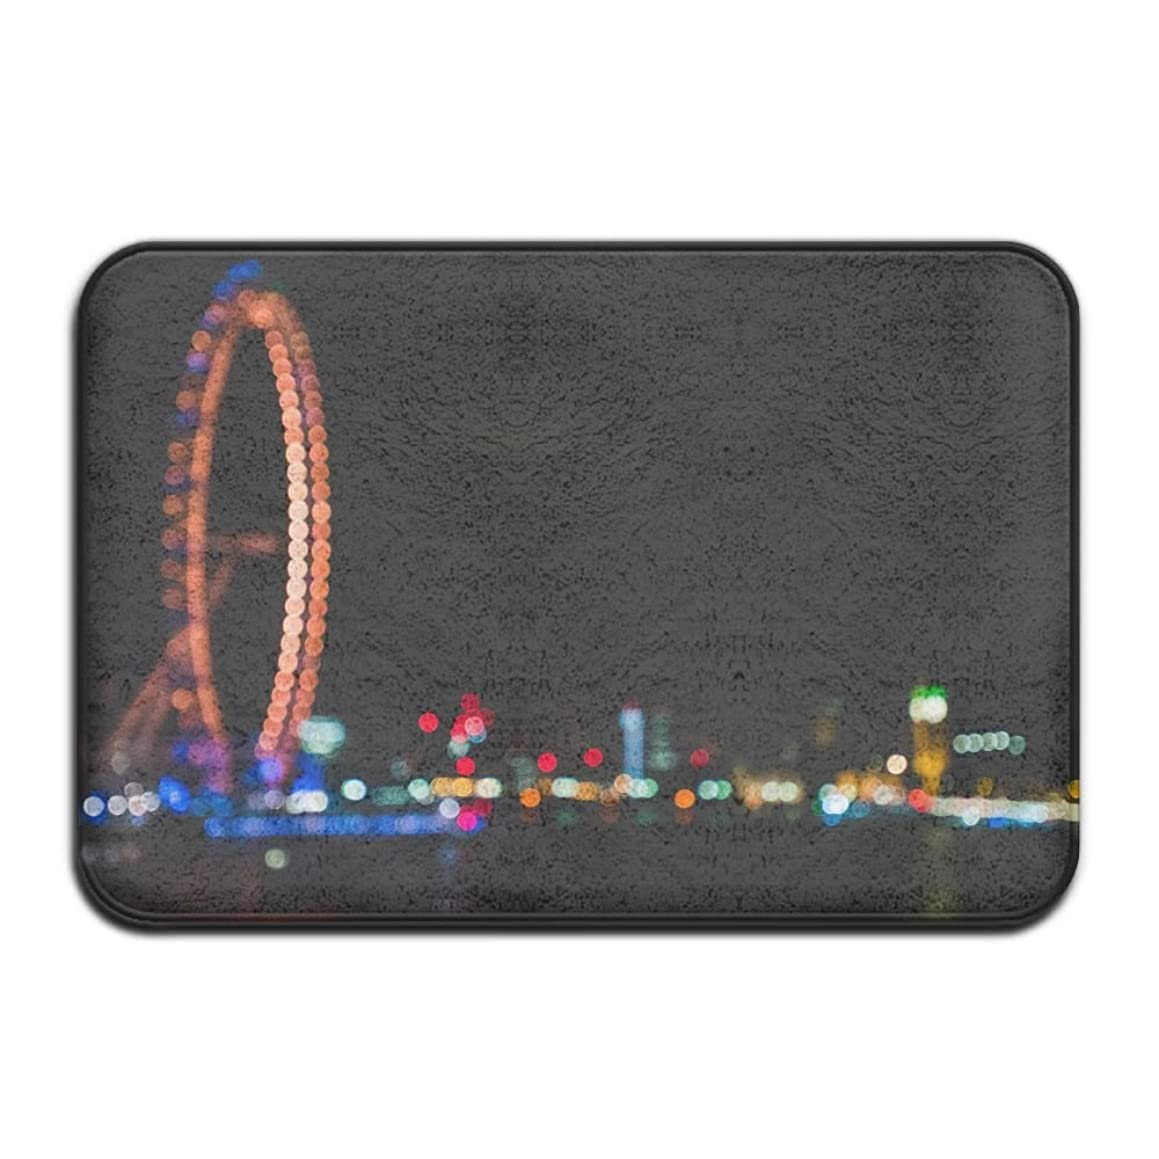 Lights City Night London UK Blurred Bokeh Non Slip Indoor Doormat For Home Office Clean Absorbent Antiskid Kitchen Bath Mats